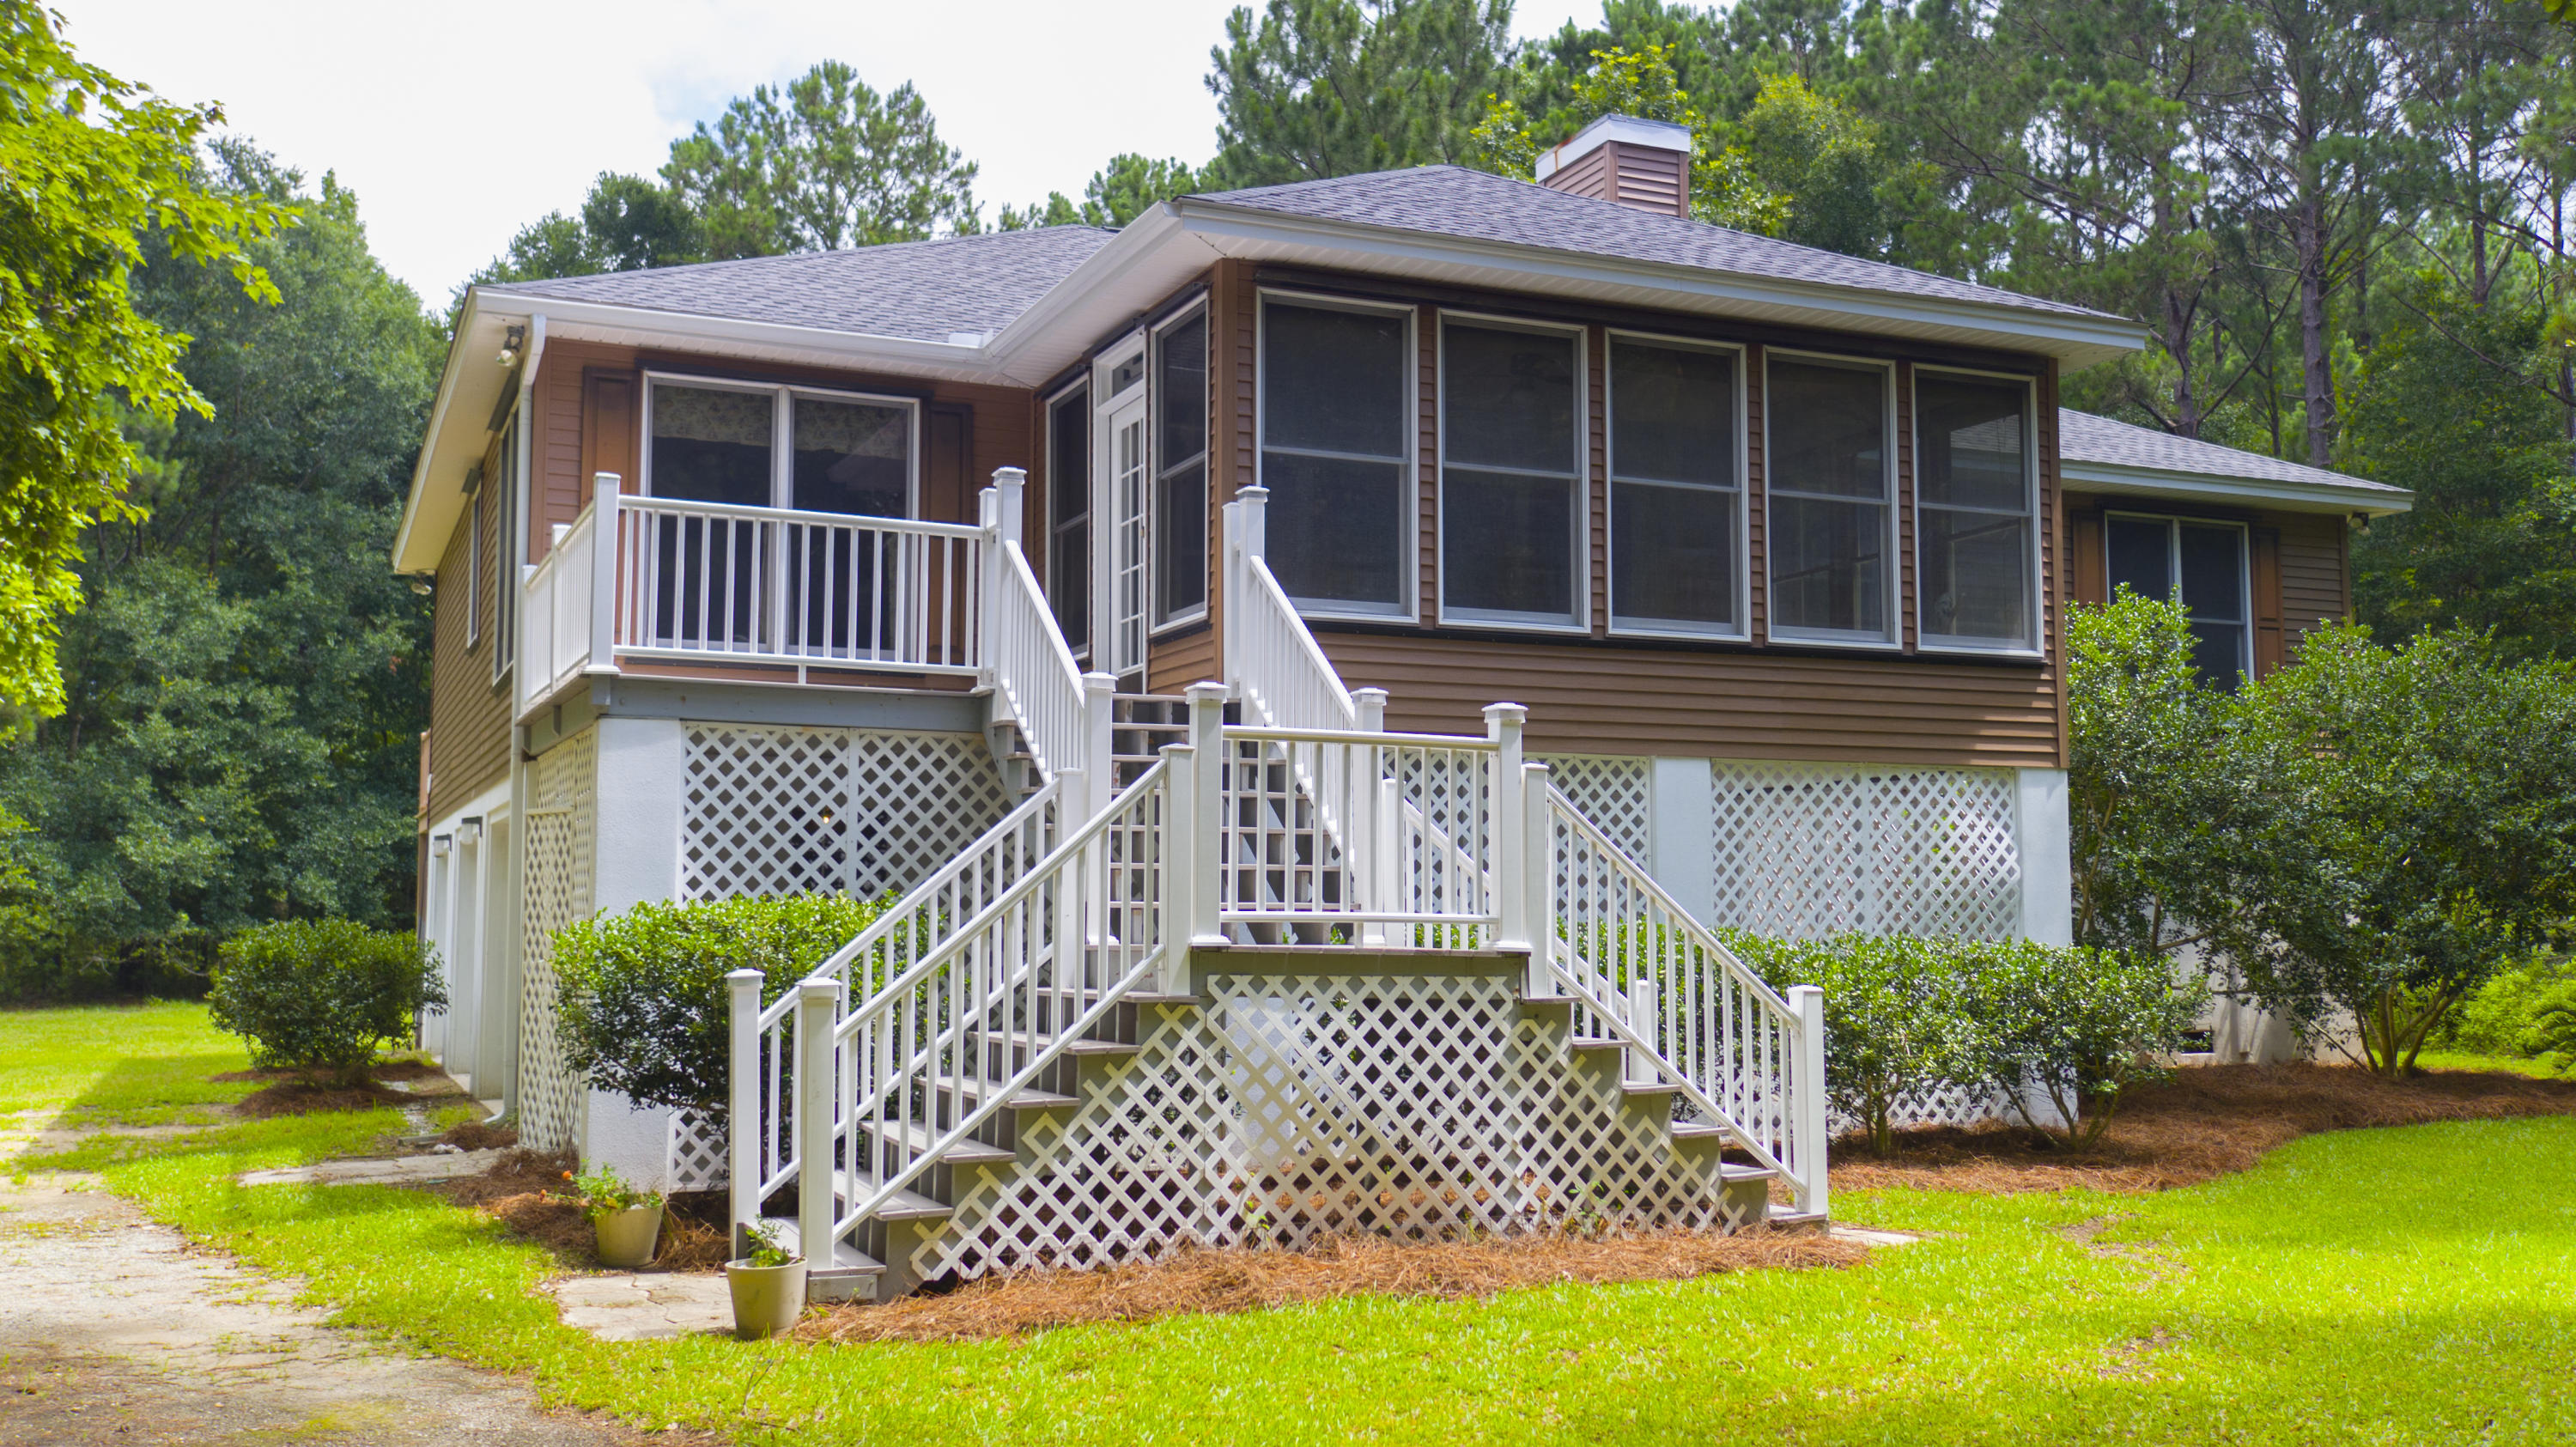 Photo of 6148 Caravelle Ct, Awendaw, SC 29429